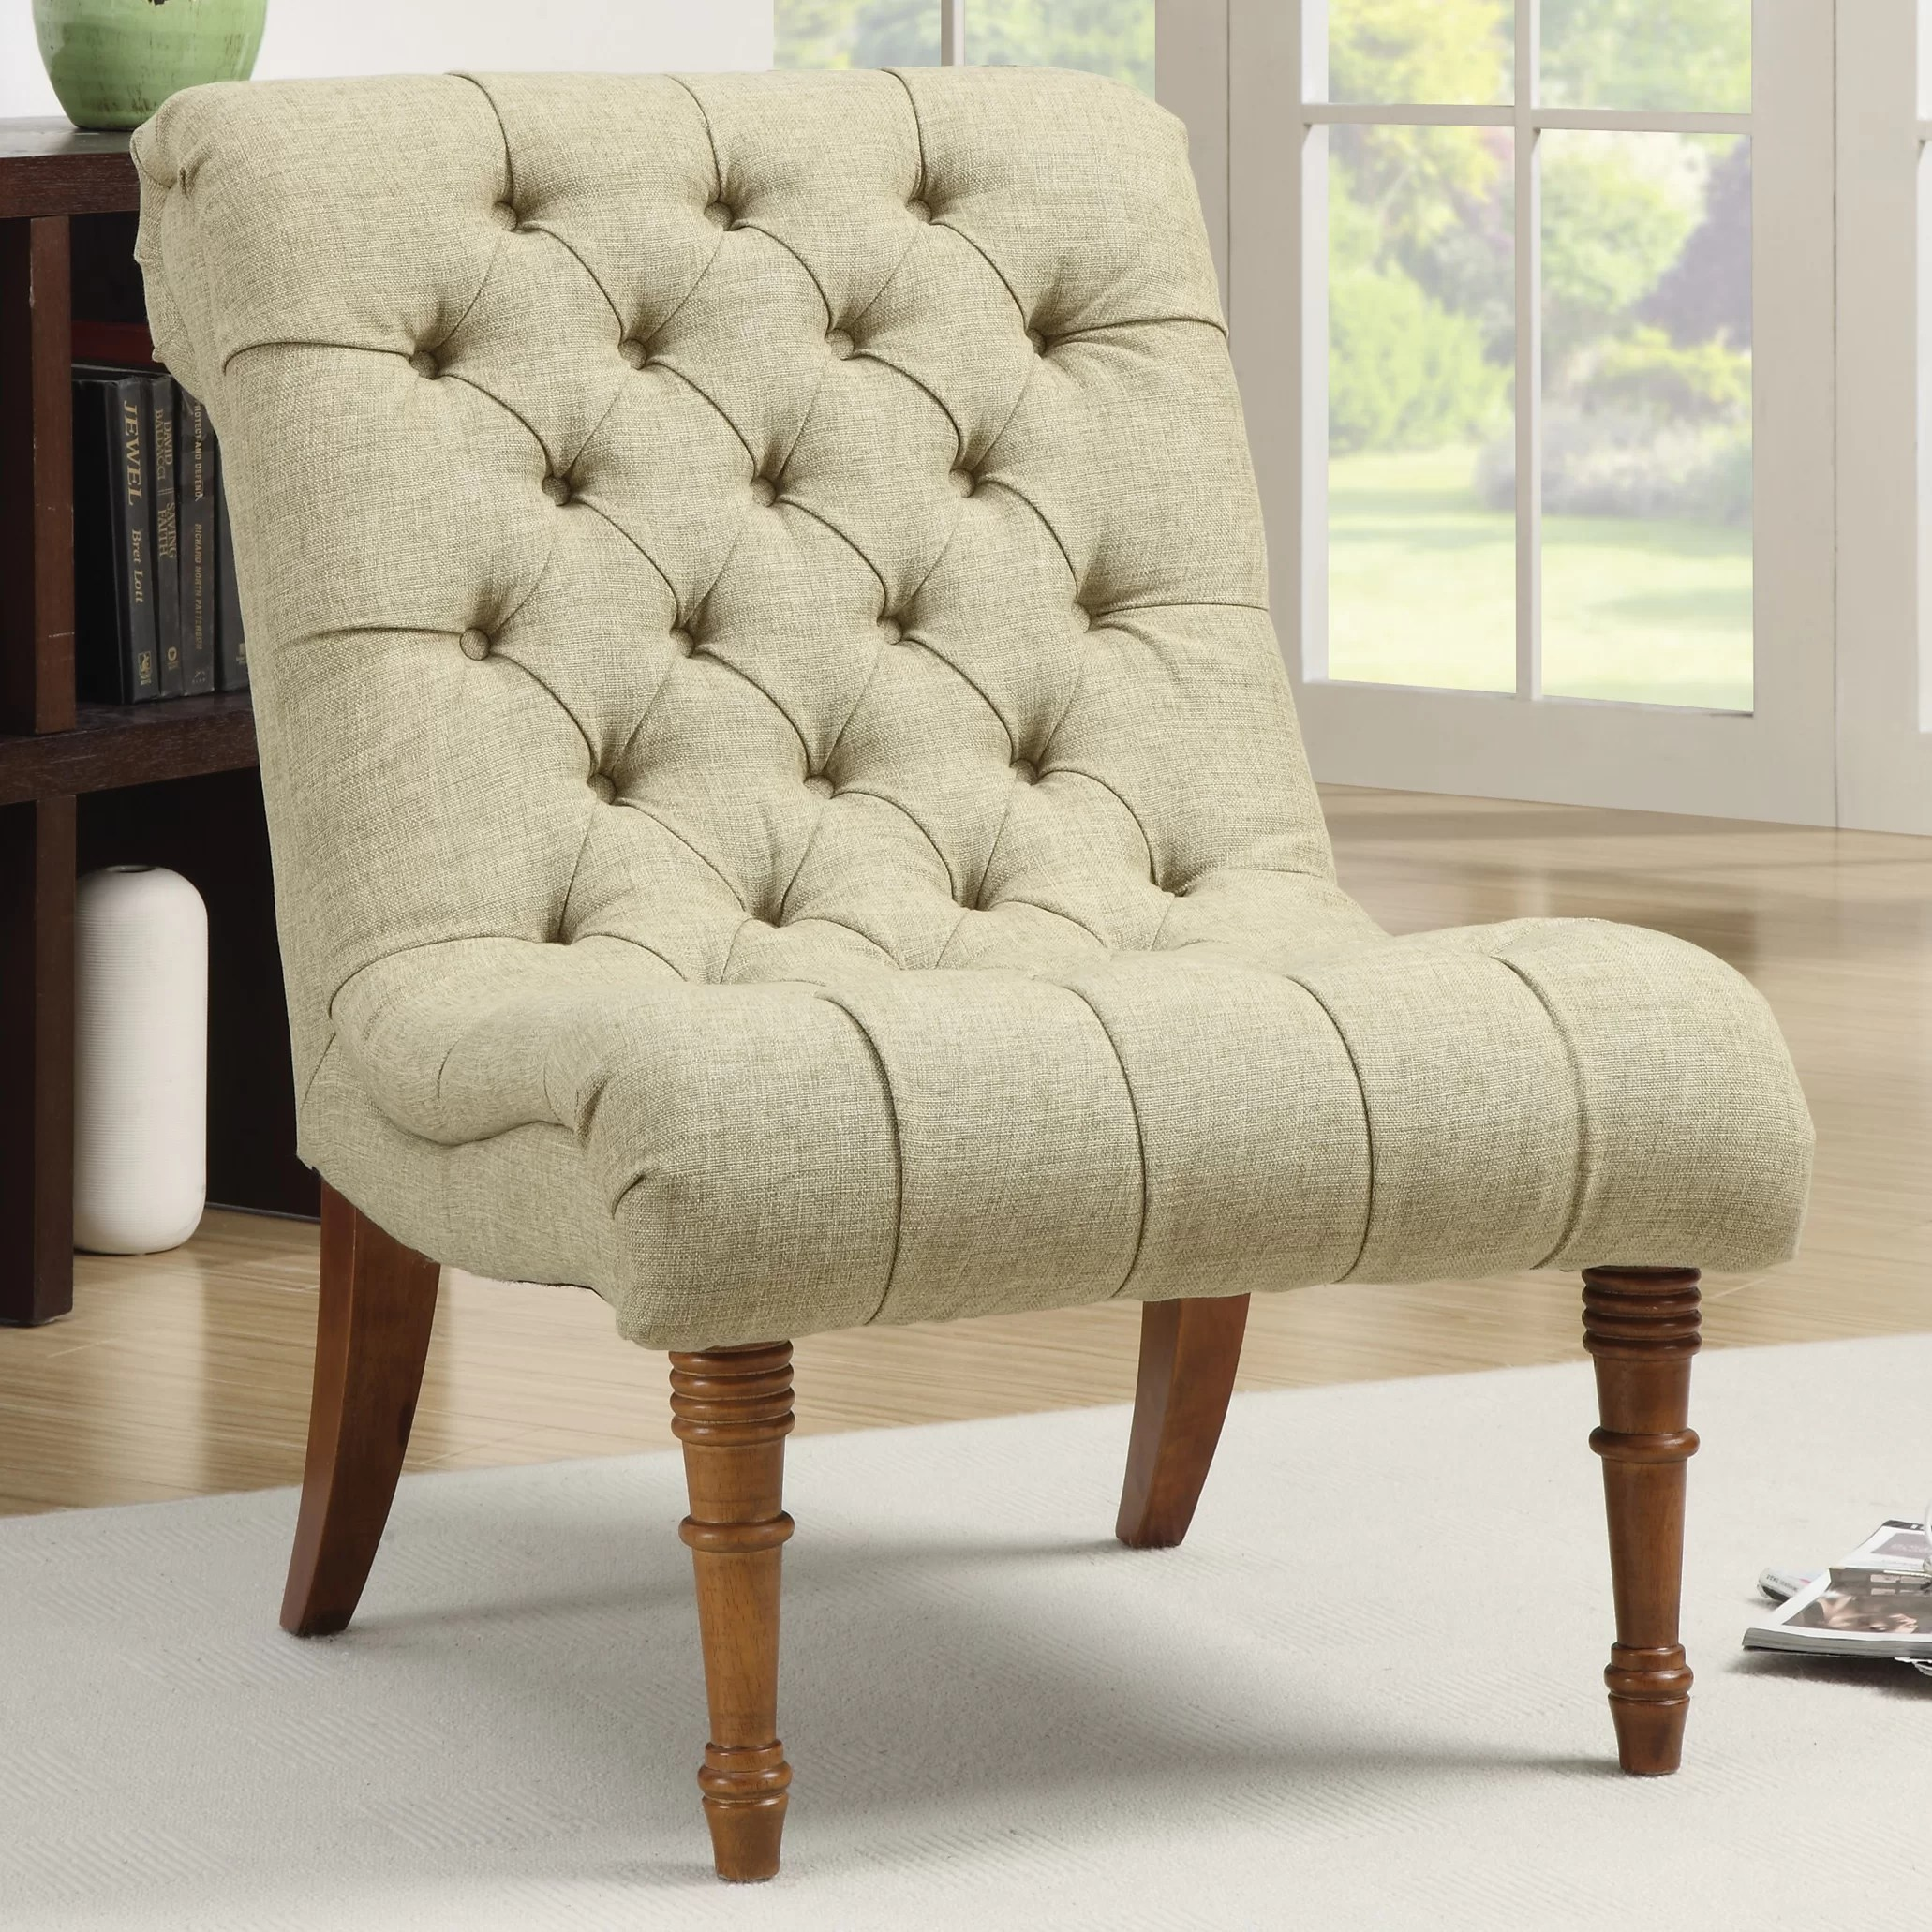 tufted side chair desk on wood floor rosalind wheeler bottrell and reviews